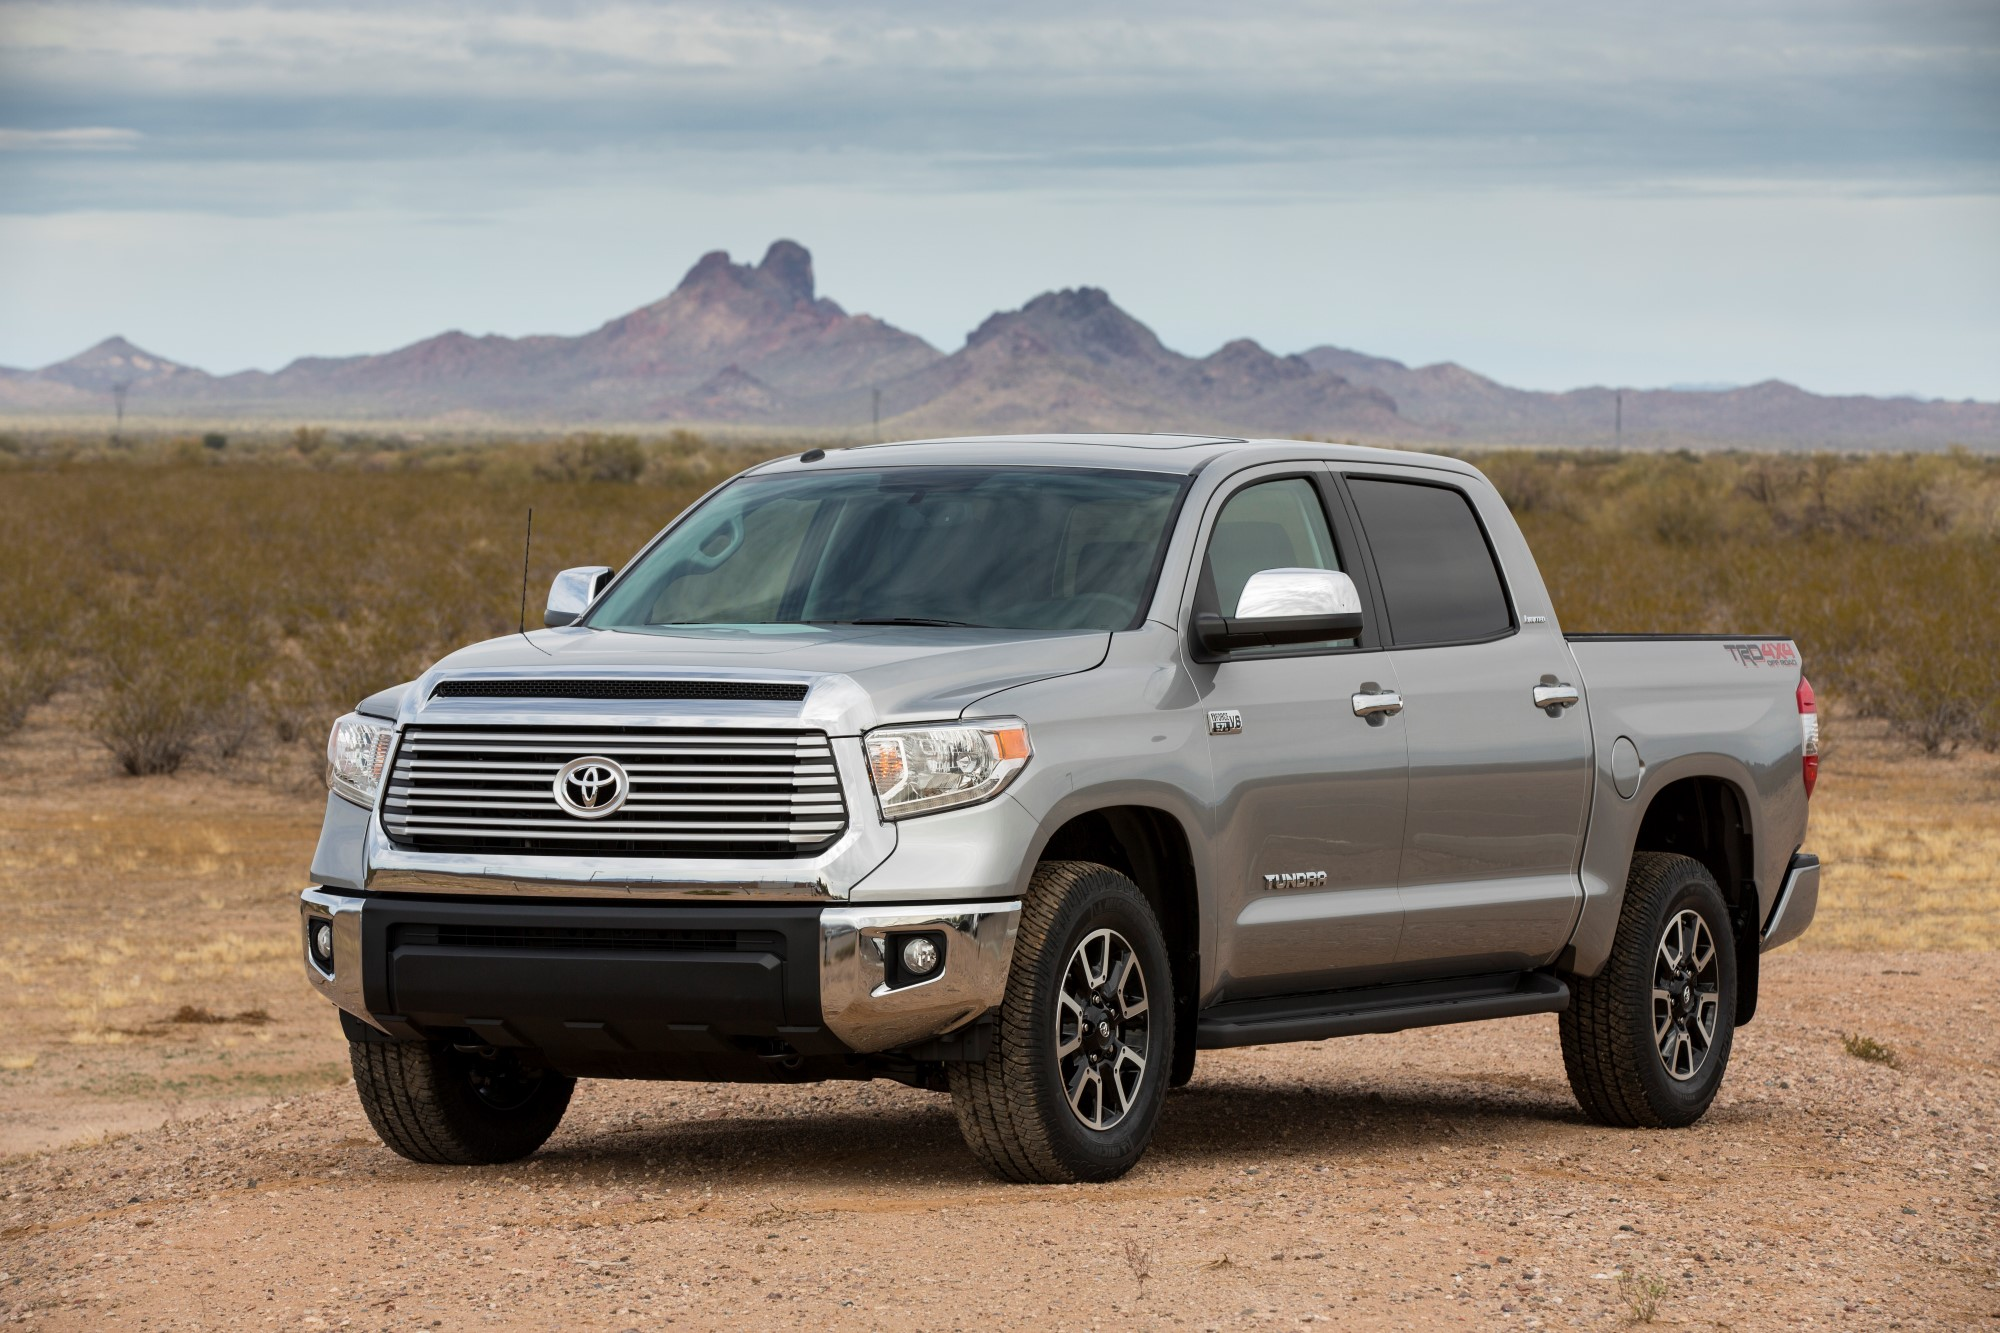 2014 Toyota Tundra Review, Ratings, Specs, Prices, and Photos - The